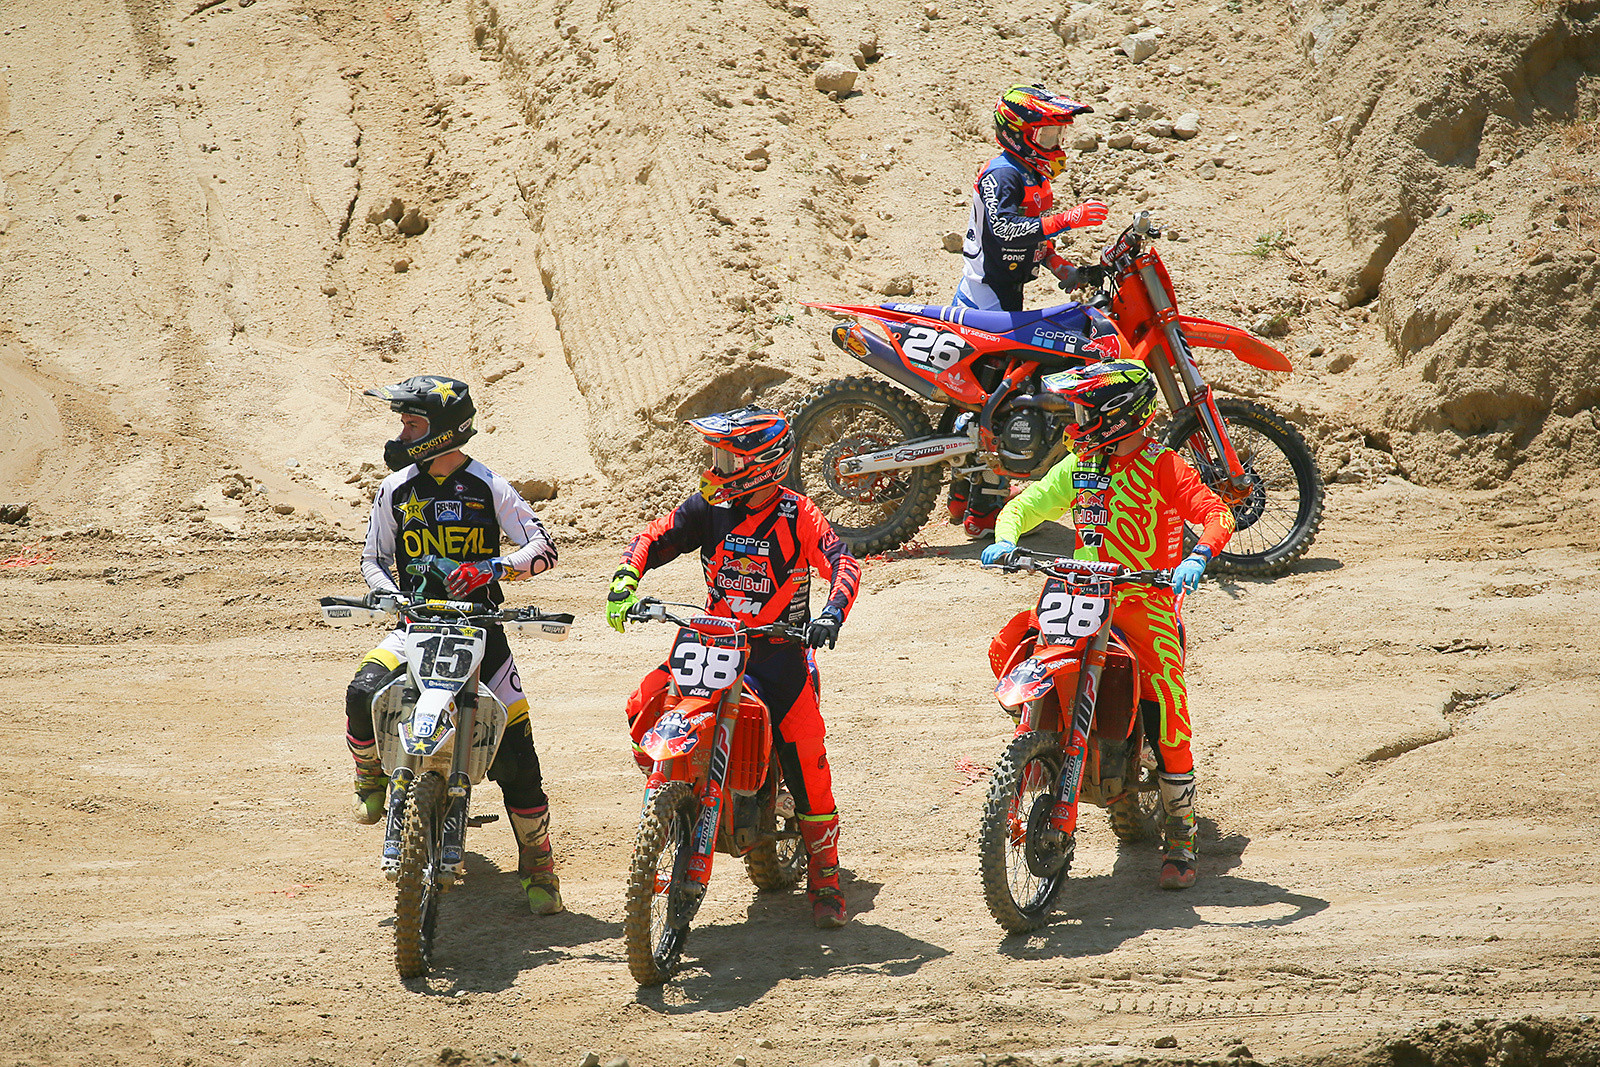 The Troy Lee Designs/Red Bull/KTM crew (minus Jordon Smith), and Dean Wilson.